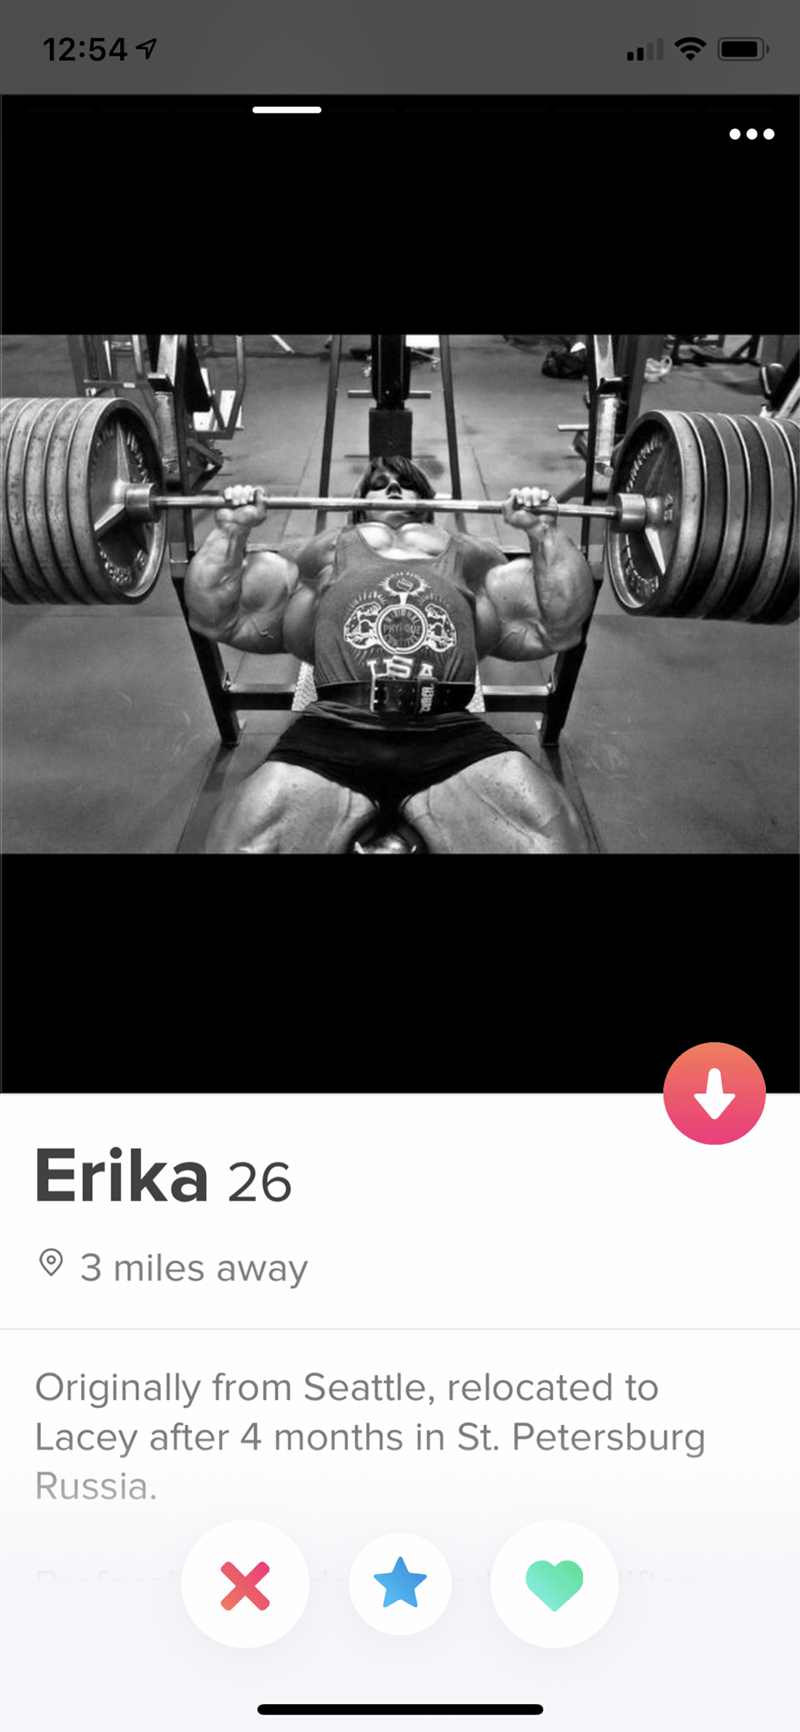 Strength training - 12:54 PHY O S A Erika 26 3 miles away Originally from Seattle, relocated to Lacey after 4 months in St. Petersburg Russia.